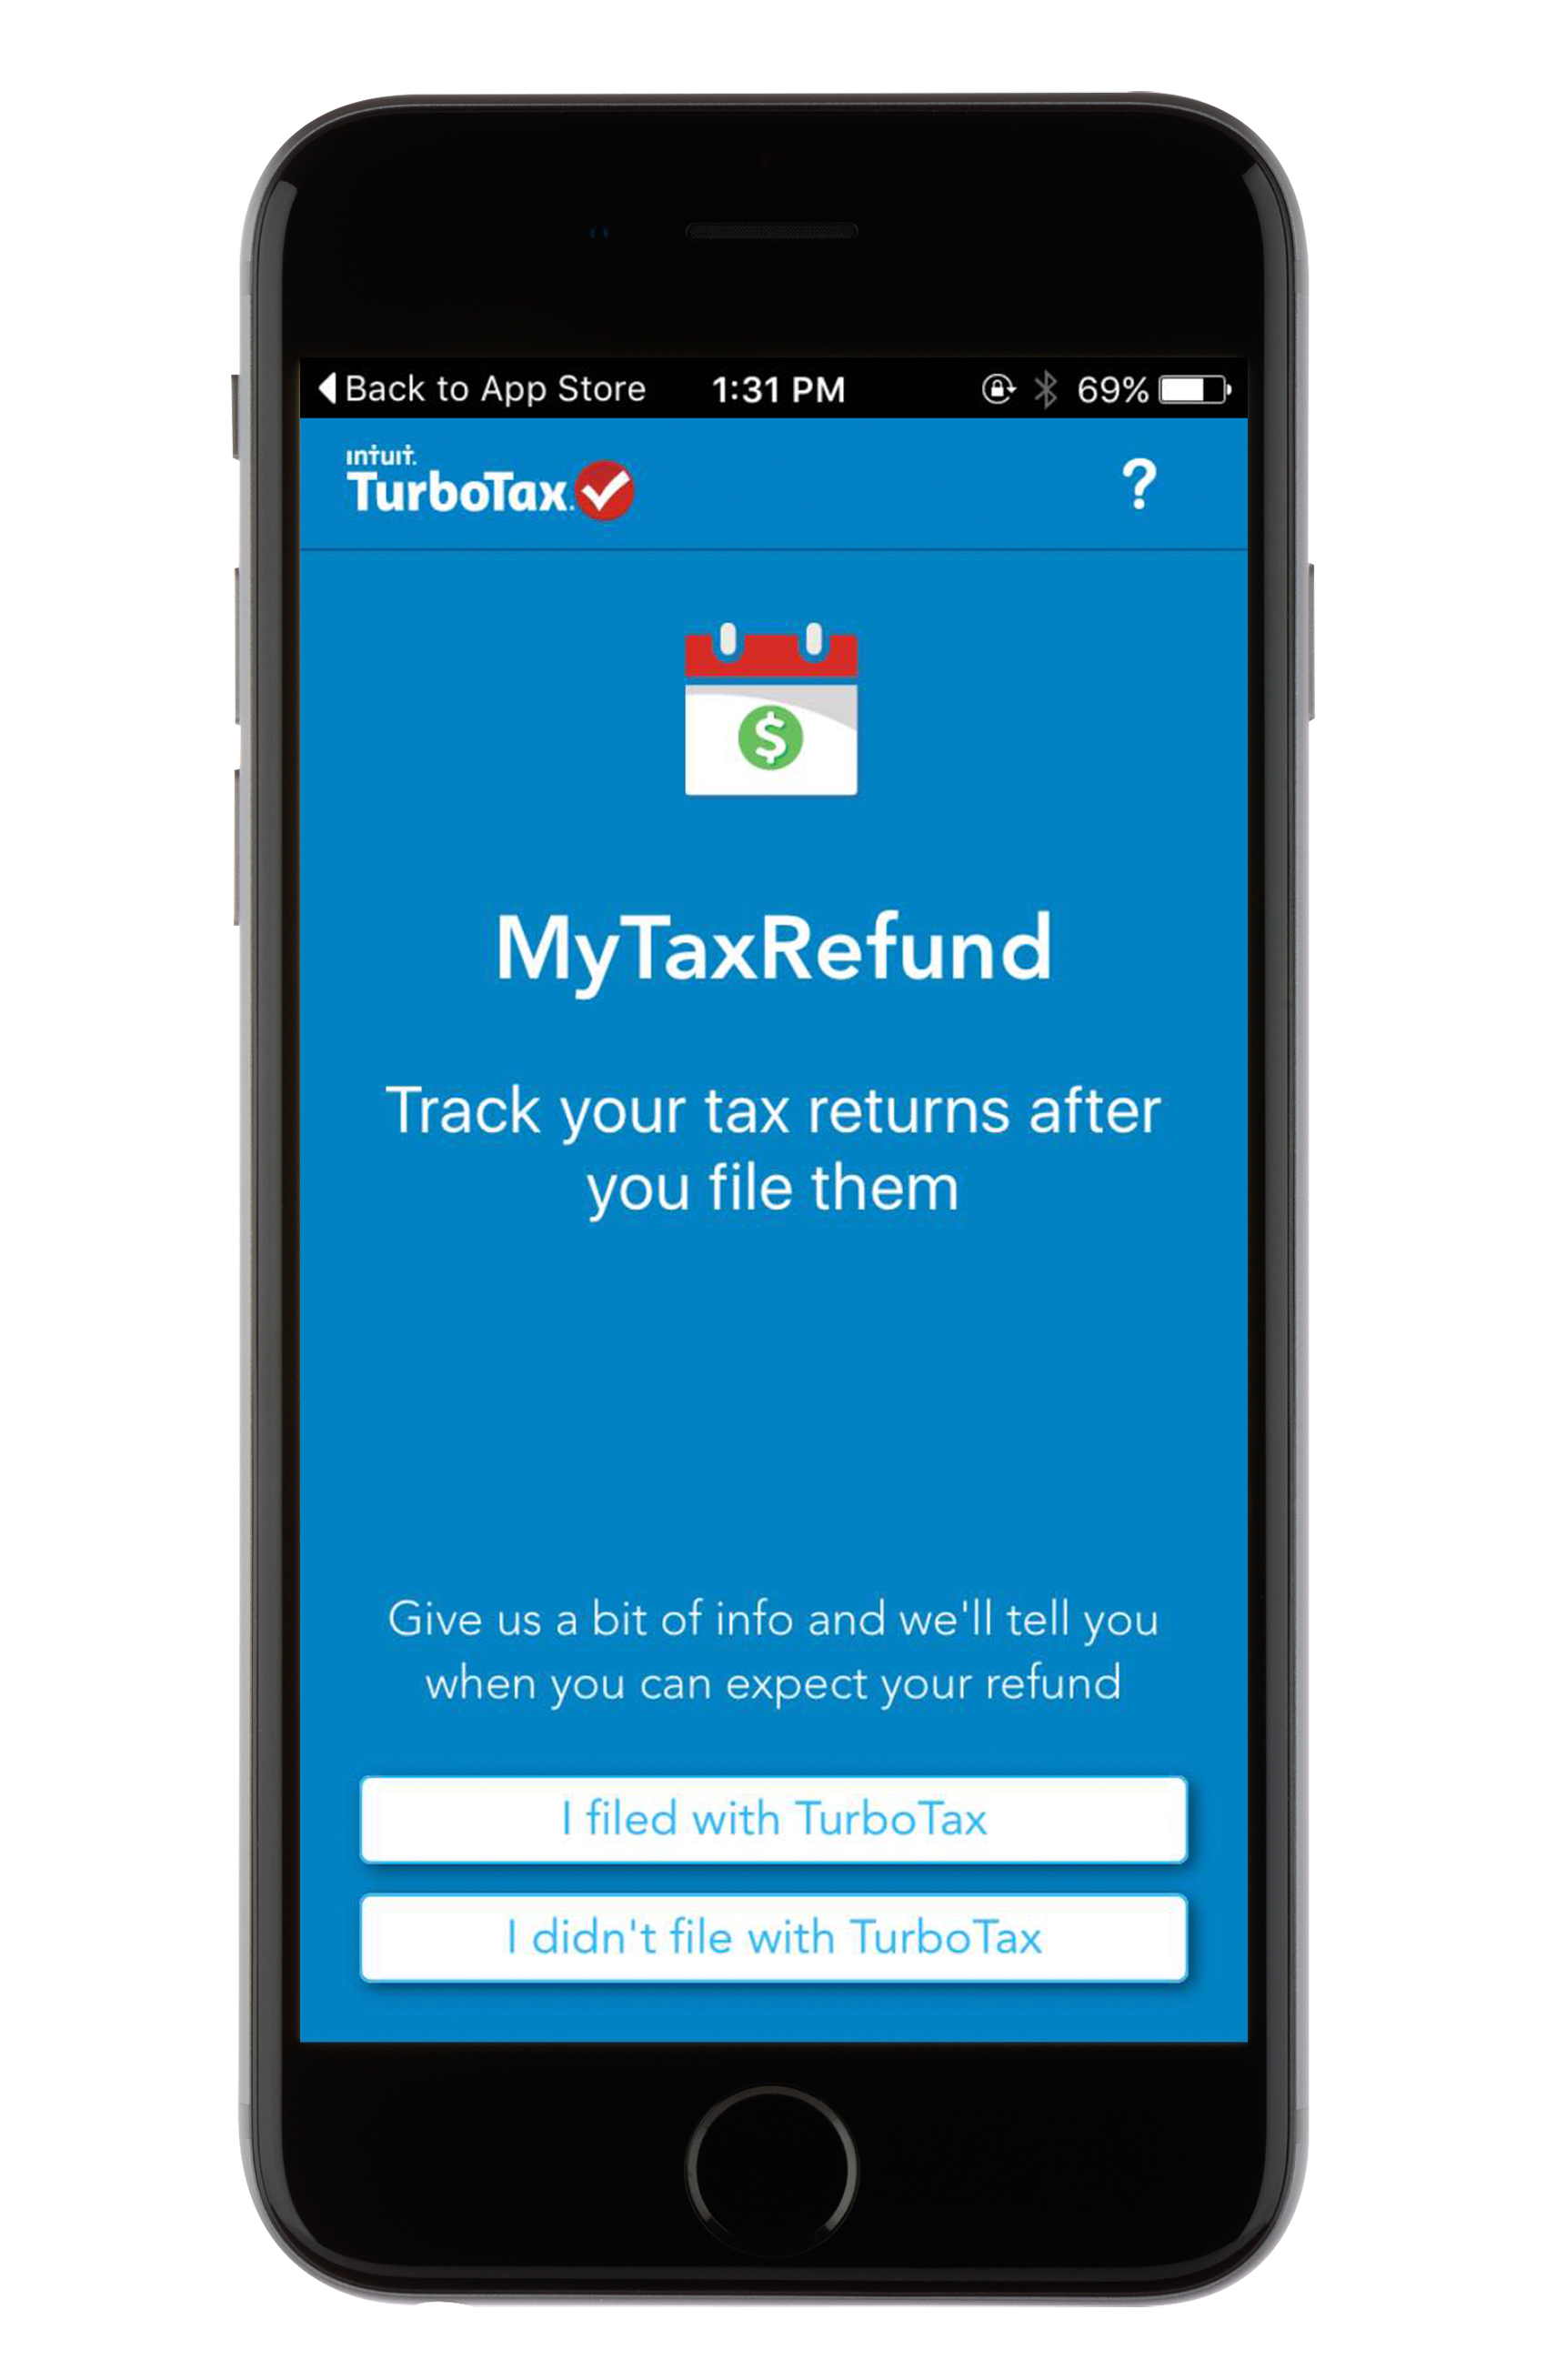 MyTaxRefund by TurboTax - Track Your Refund Mobile App ...